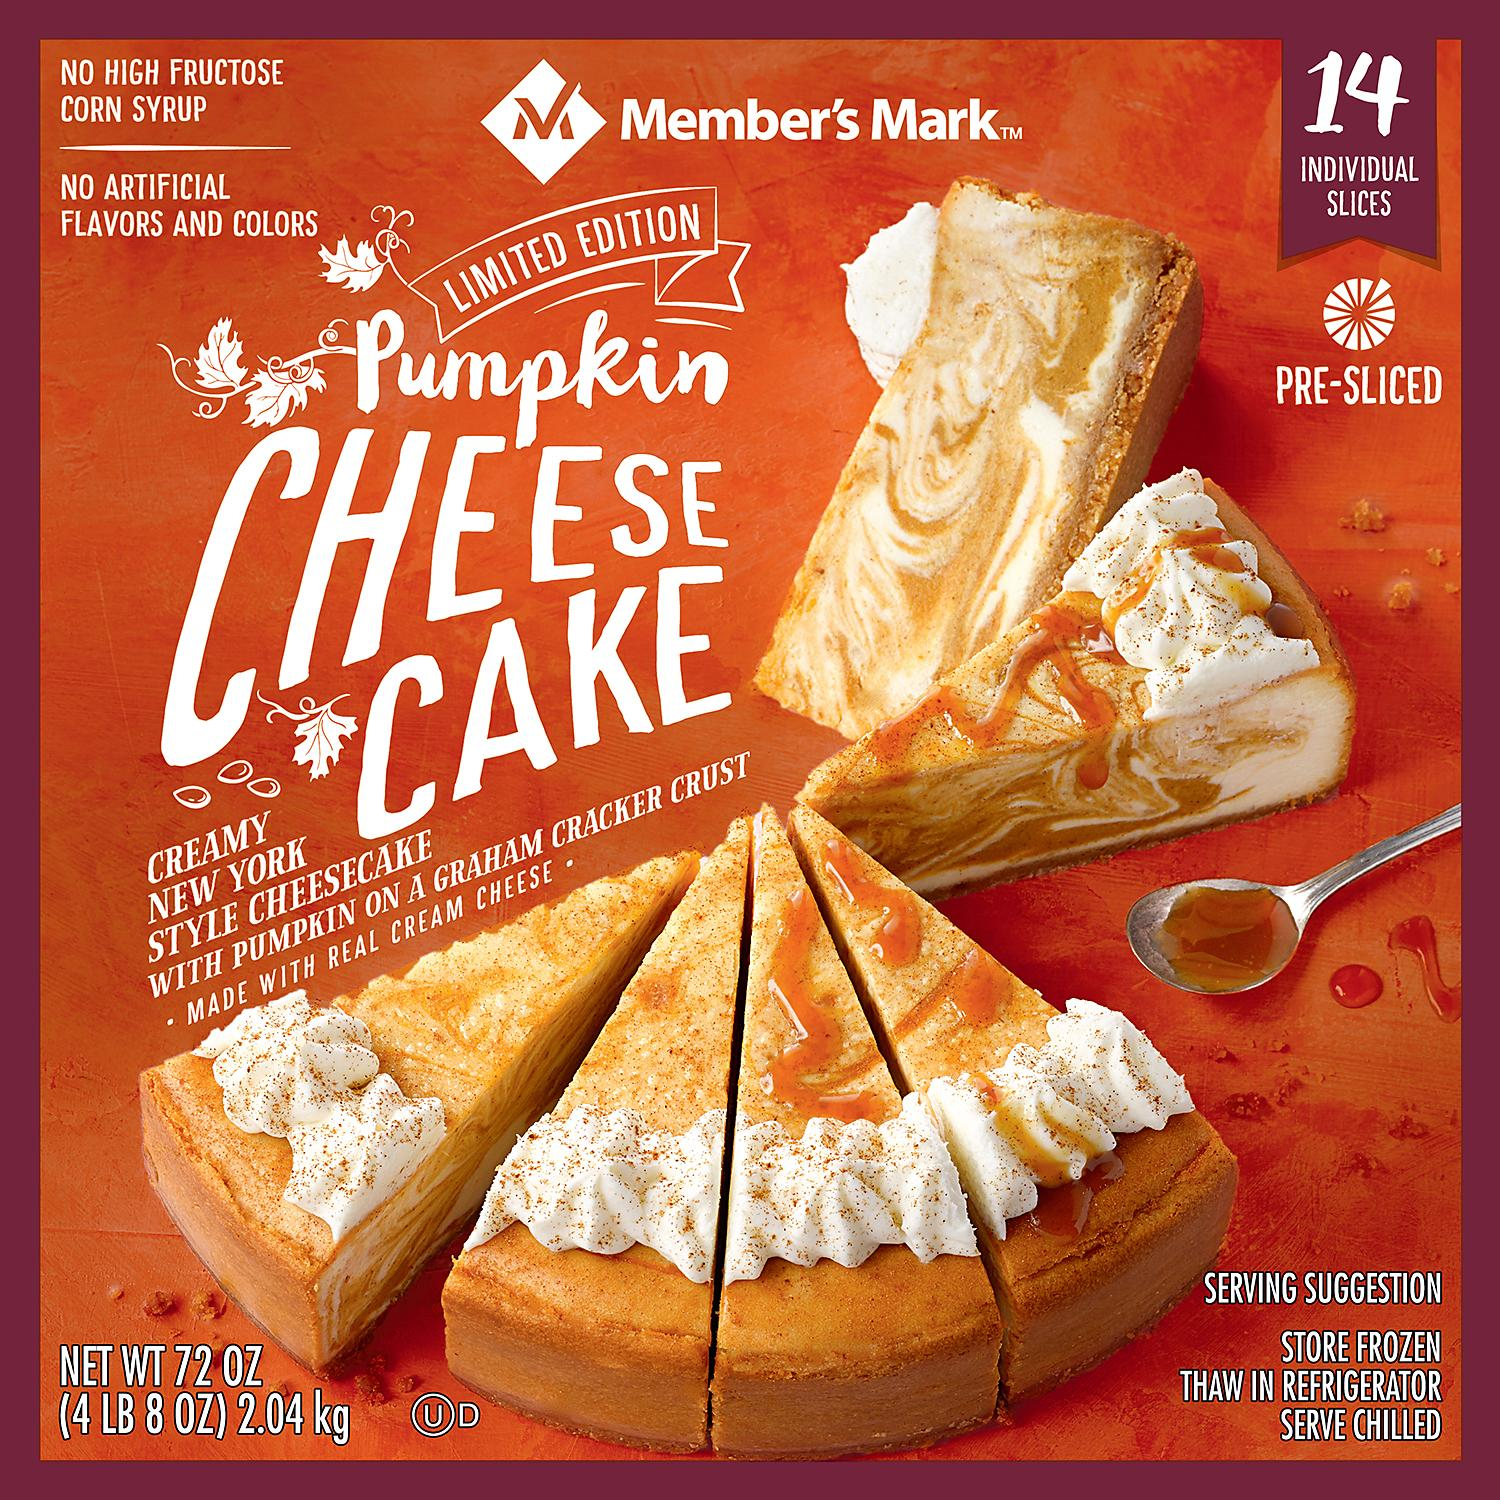 Sam's Club 4-Pound Pumpkin Cheesecake Is Officially Back on the Shelves